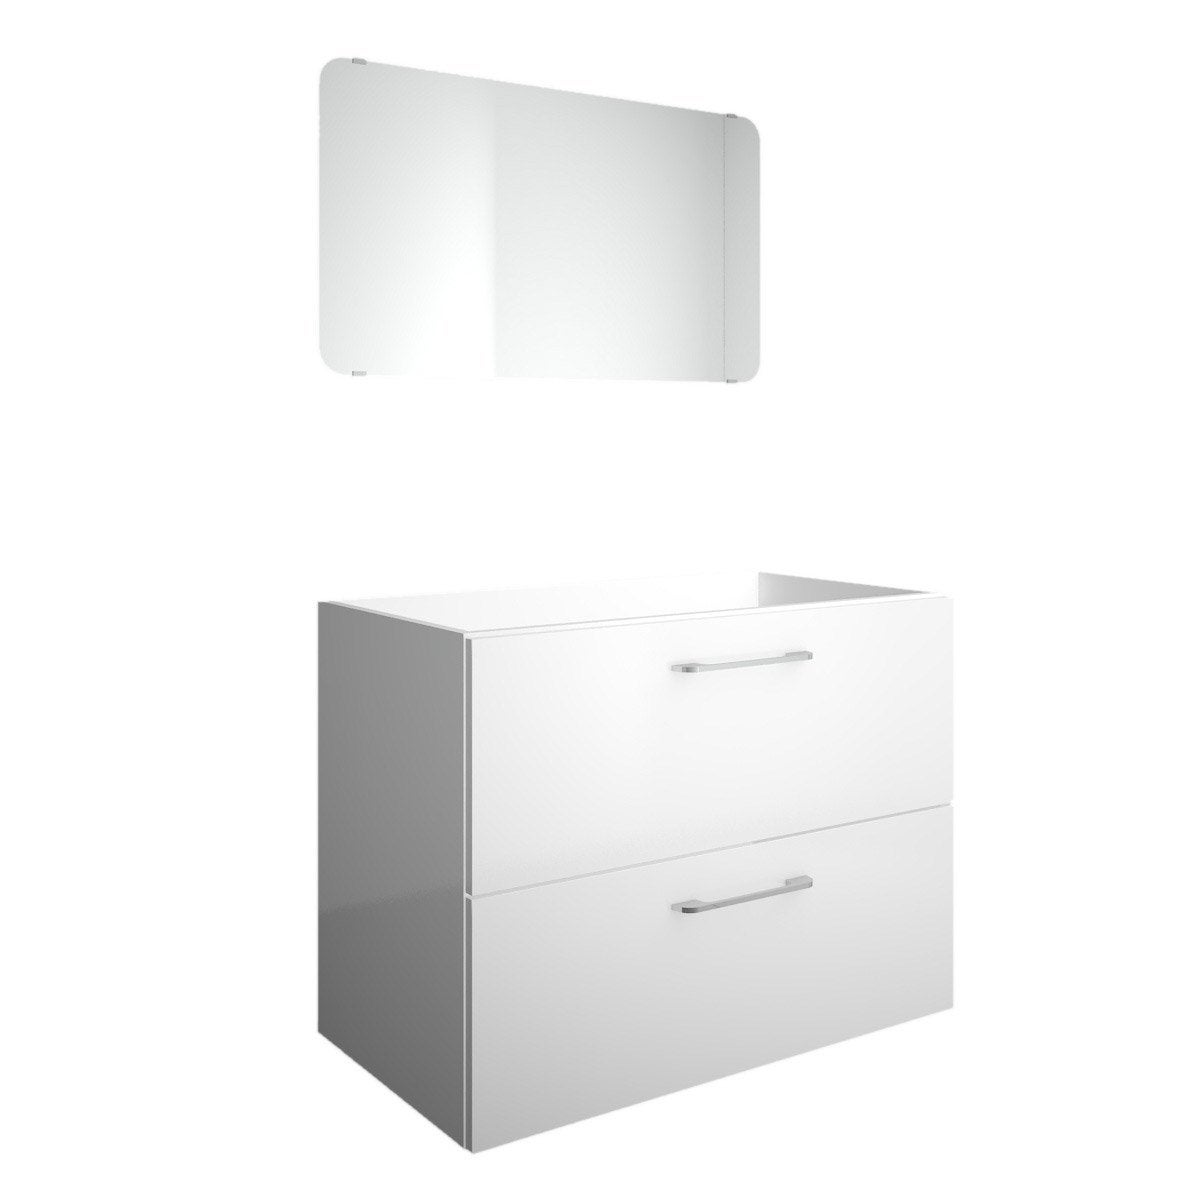 Meuble sous vasque x x cm blanc happy for Meuble bureau 60 x 60